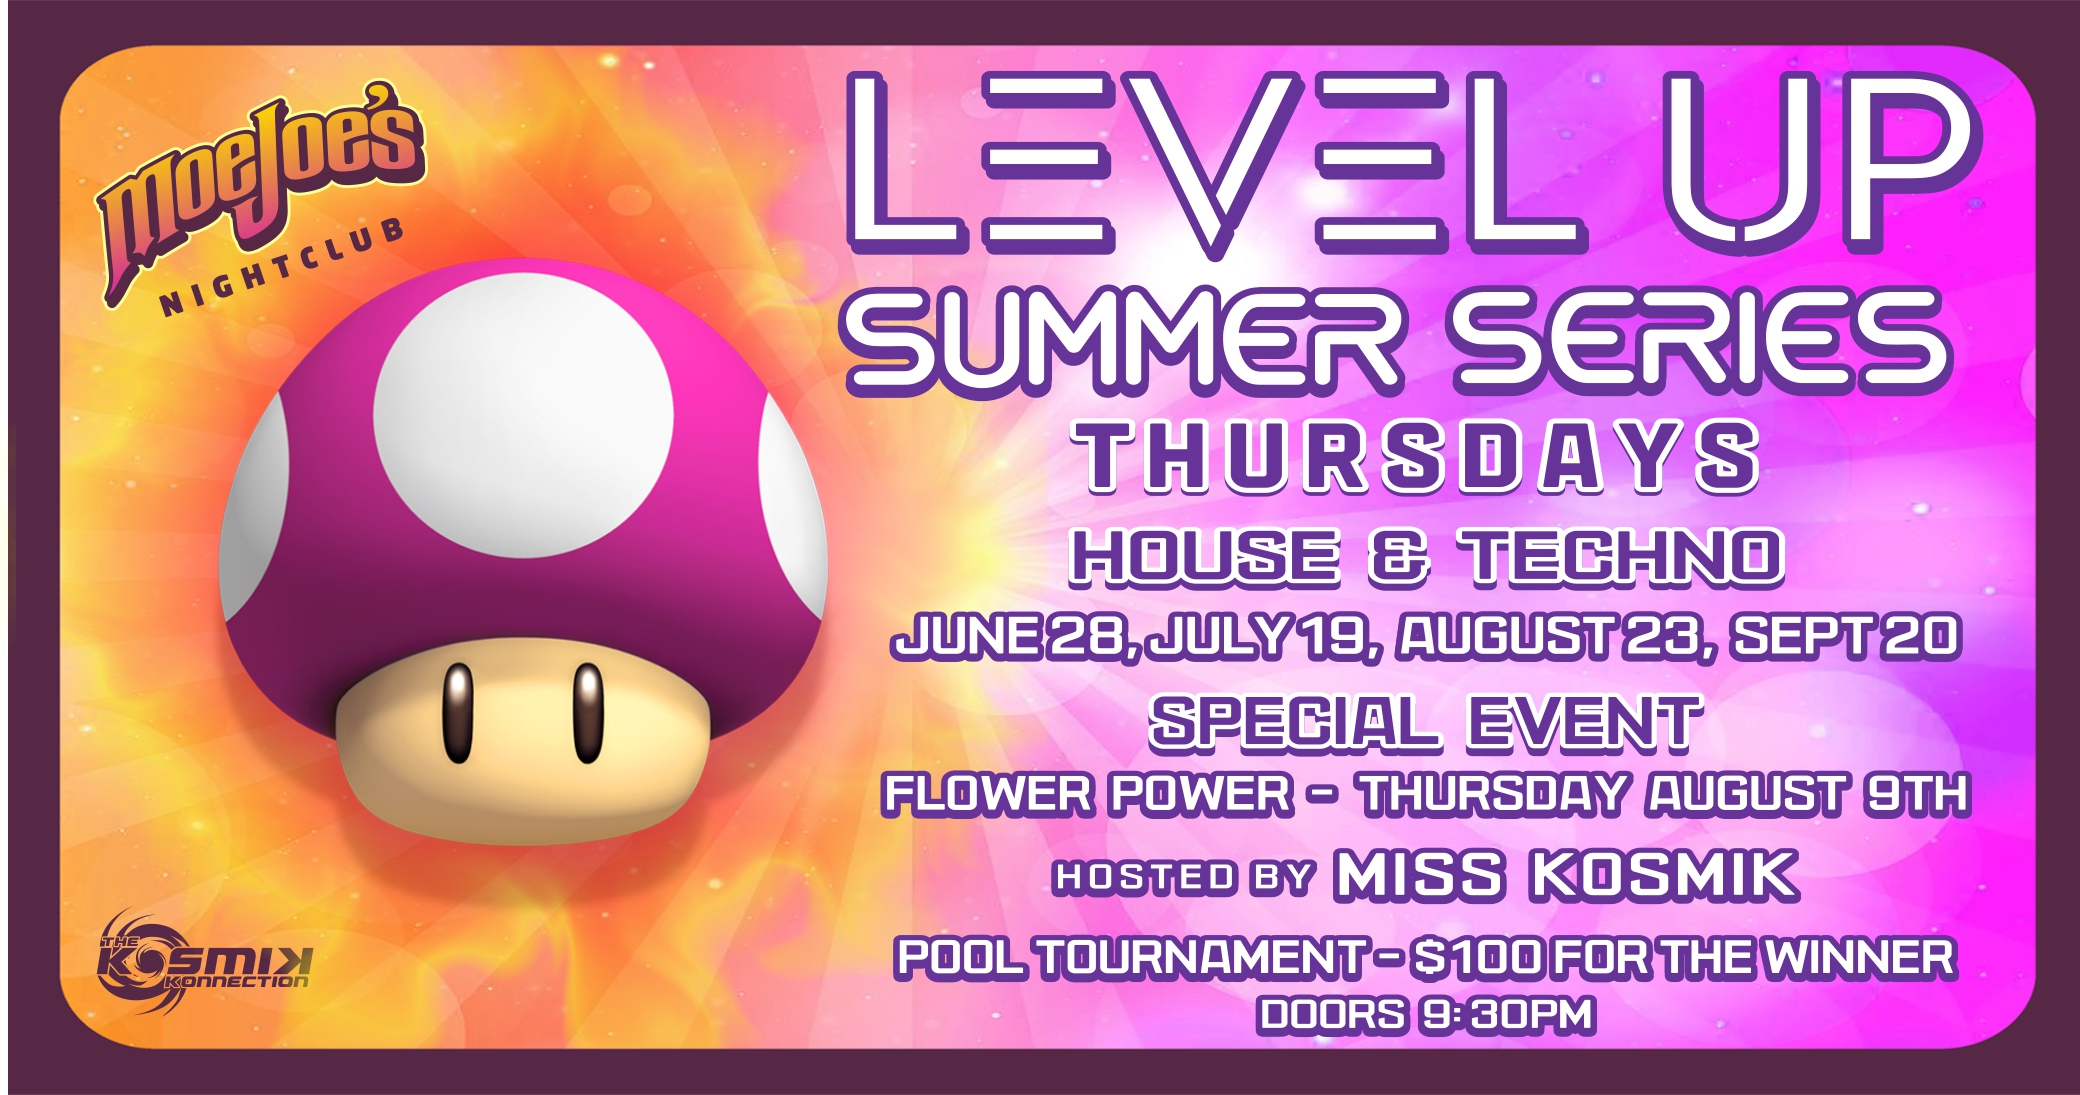 Level Up House Music Whistler Party Moe Joes